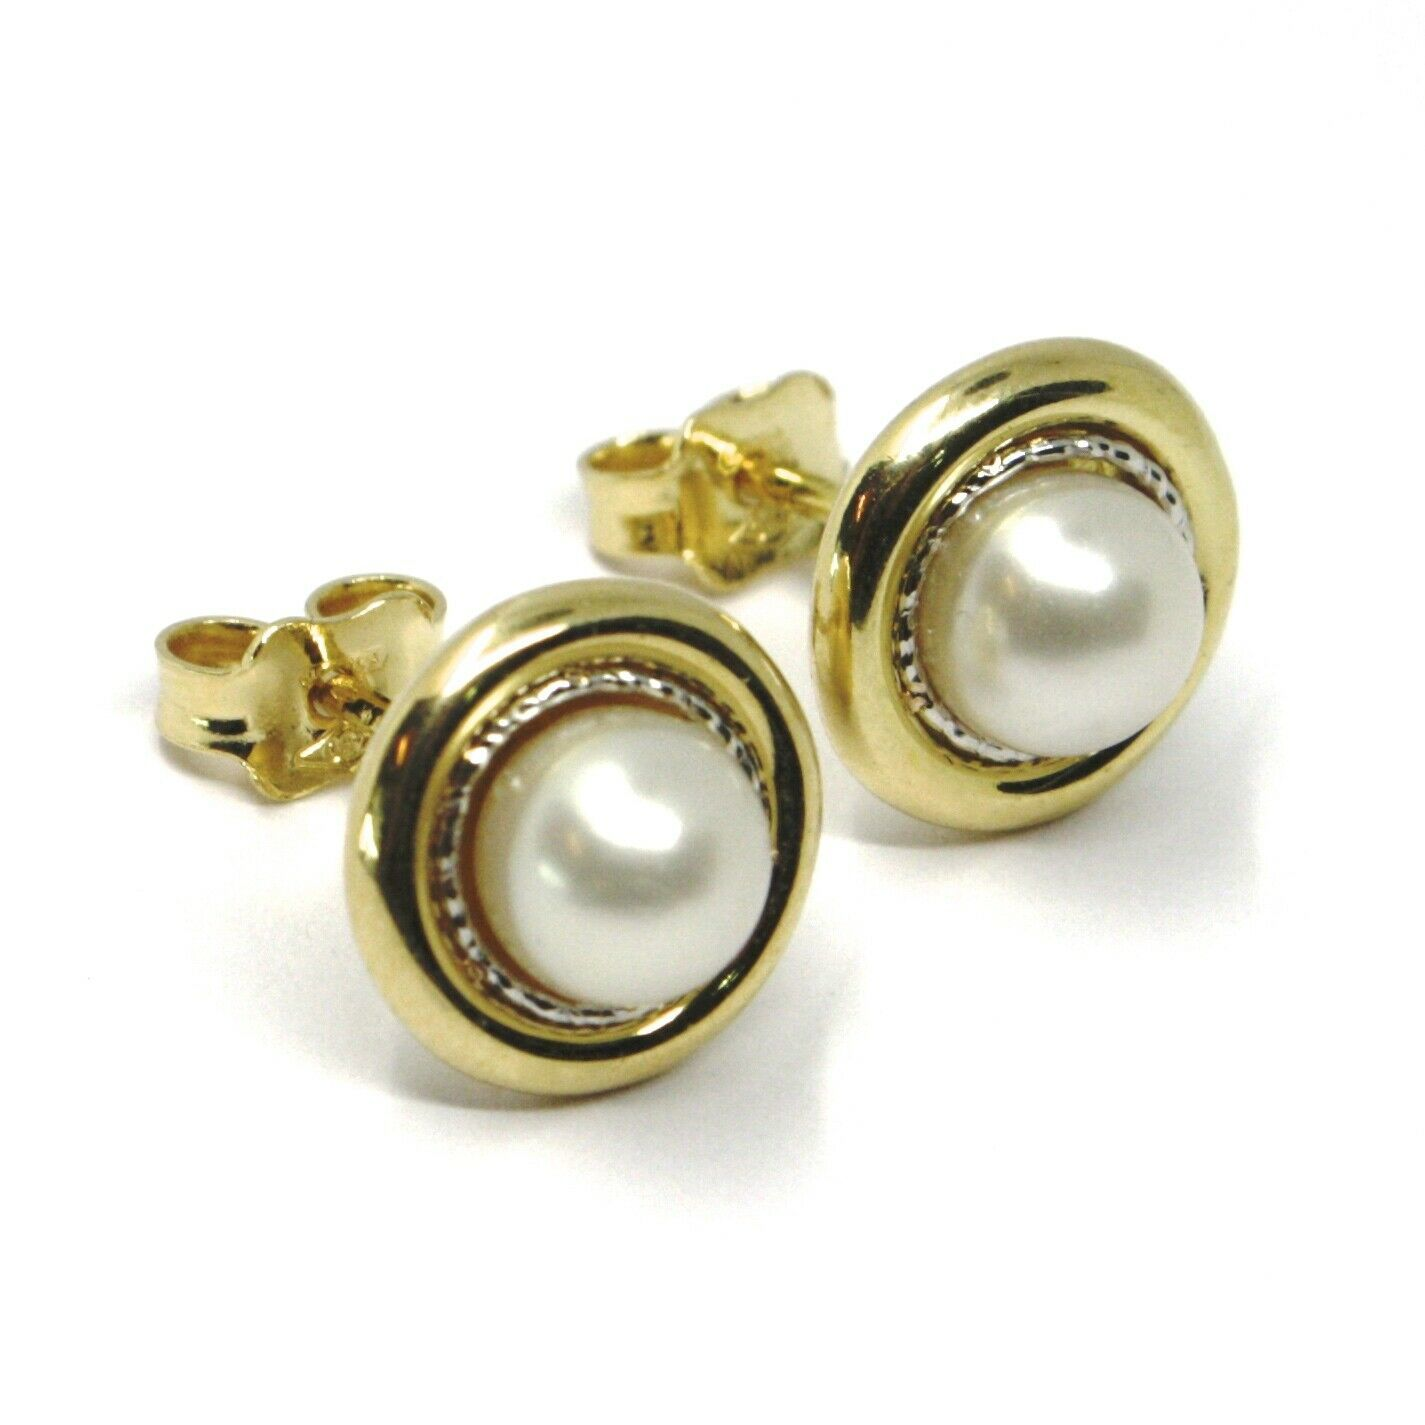 18K YELLOW WHITE GOLD PEARL BUTTON EARRINGS, 11 MM, 0.43 INCHES WORKED DISC